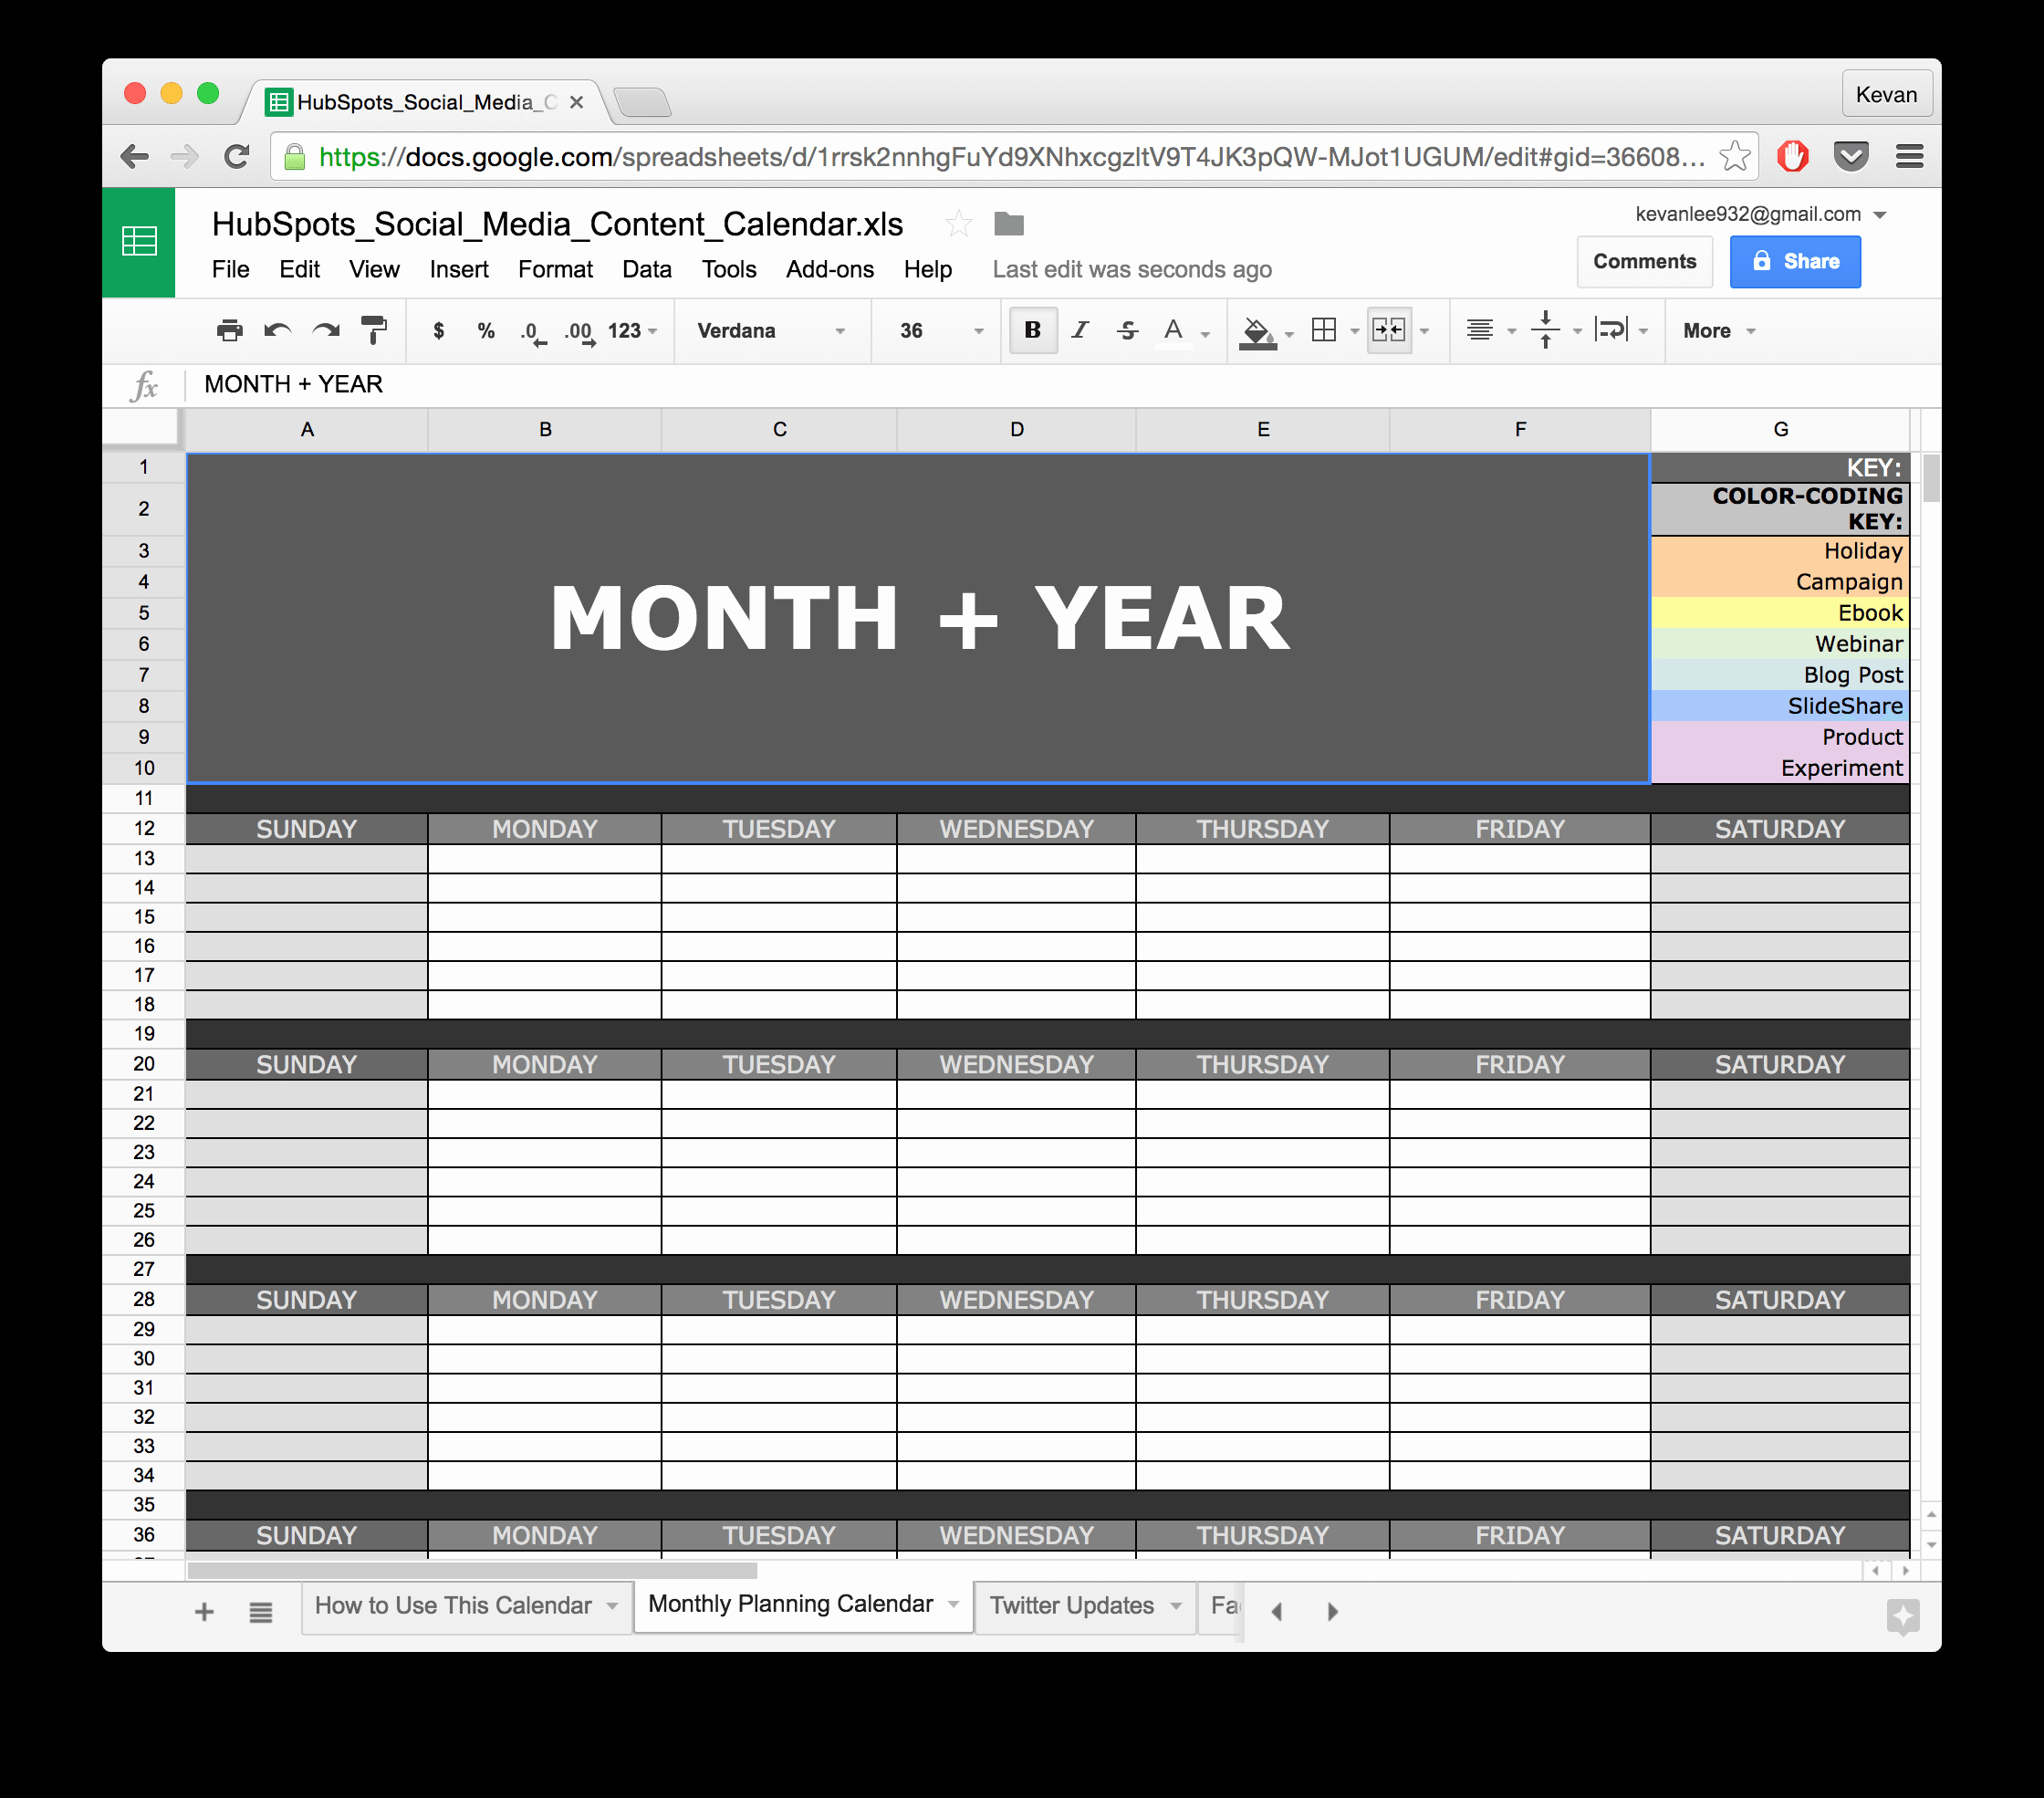 Call Center Schedule Template Excel Fresh Call Center Dashboard Excel Templates